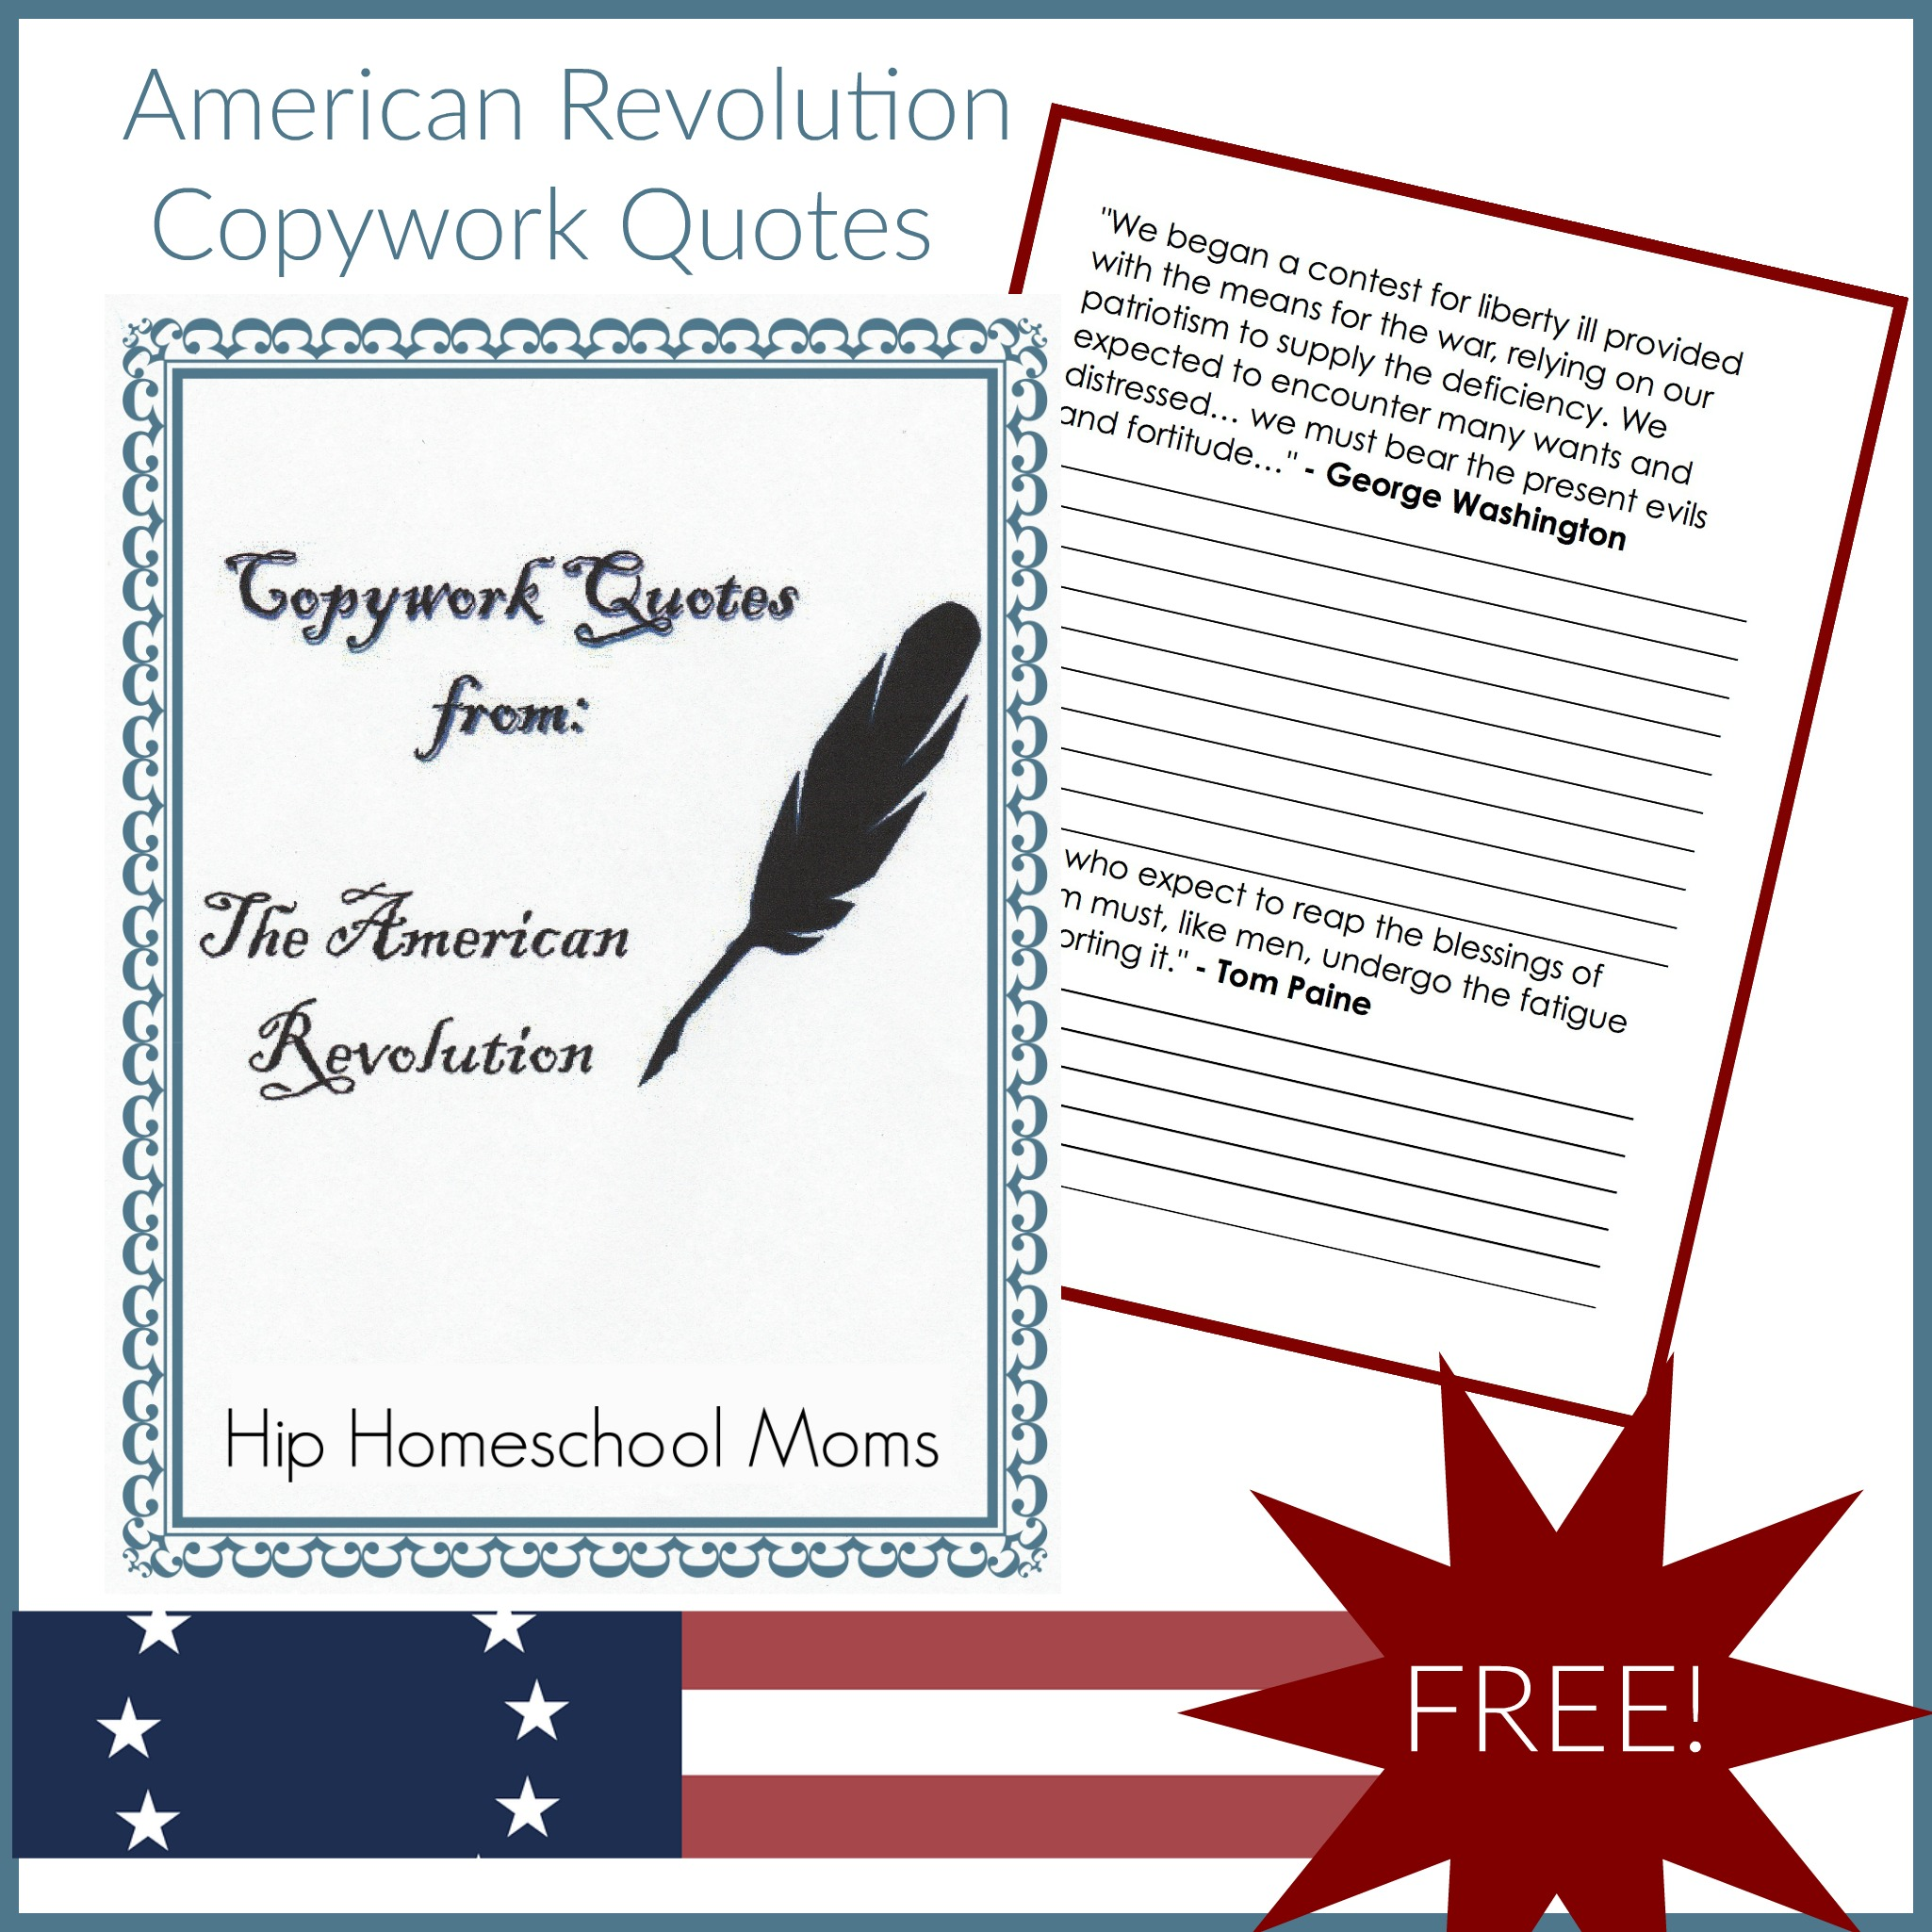 american home product Download american home products 1 logo vector in svg format this logo  is compatible with eps, ai, psd and adobe pdf formats.